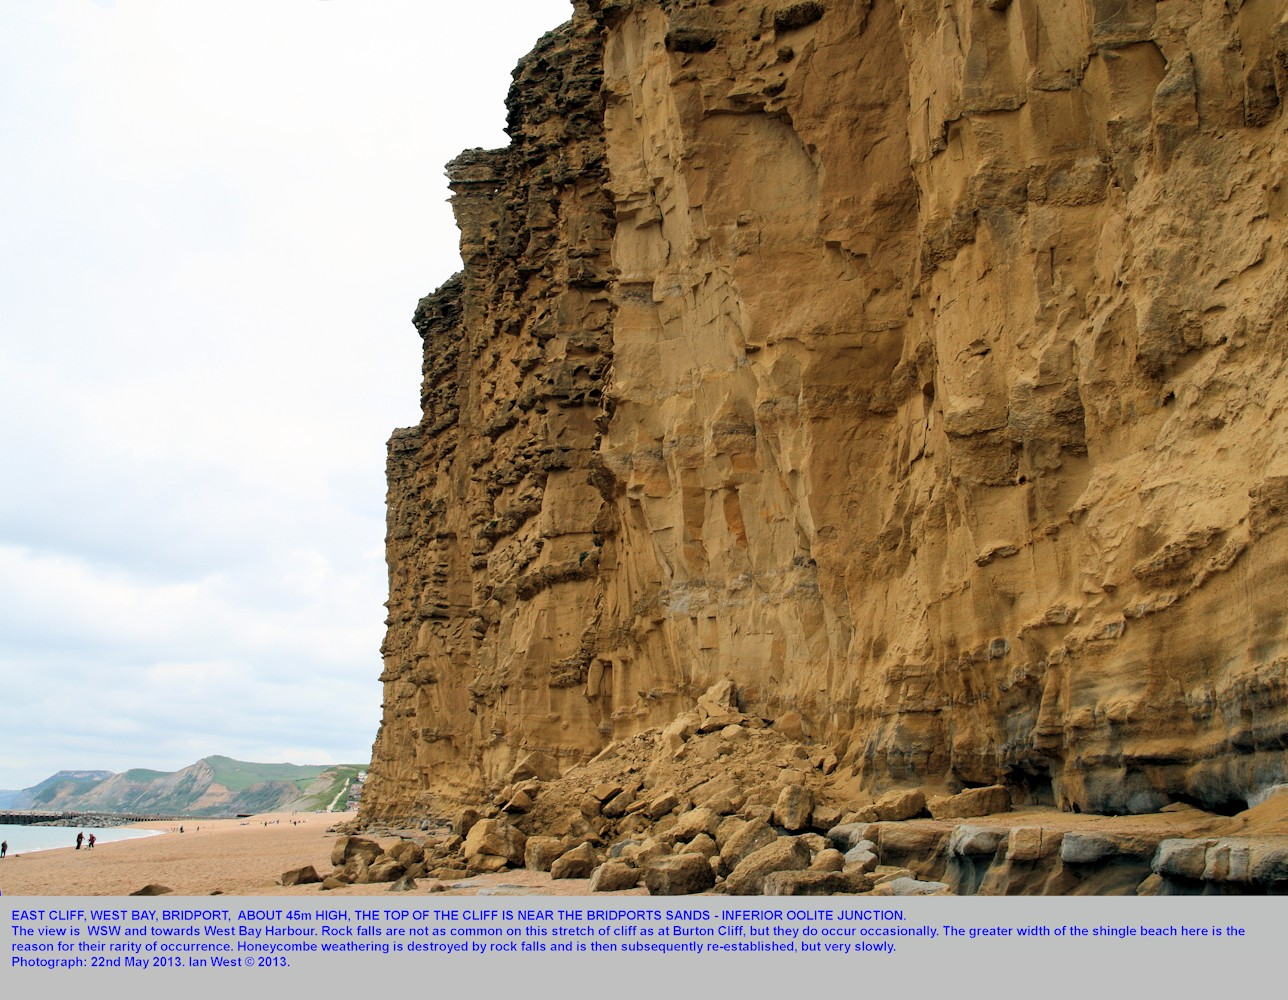 East Cliff of Bridport Sands Formation, West Bay, Bridport, Dorset, May 2013, showing the remains of an isolated rock fall